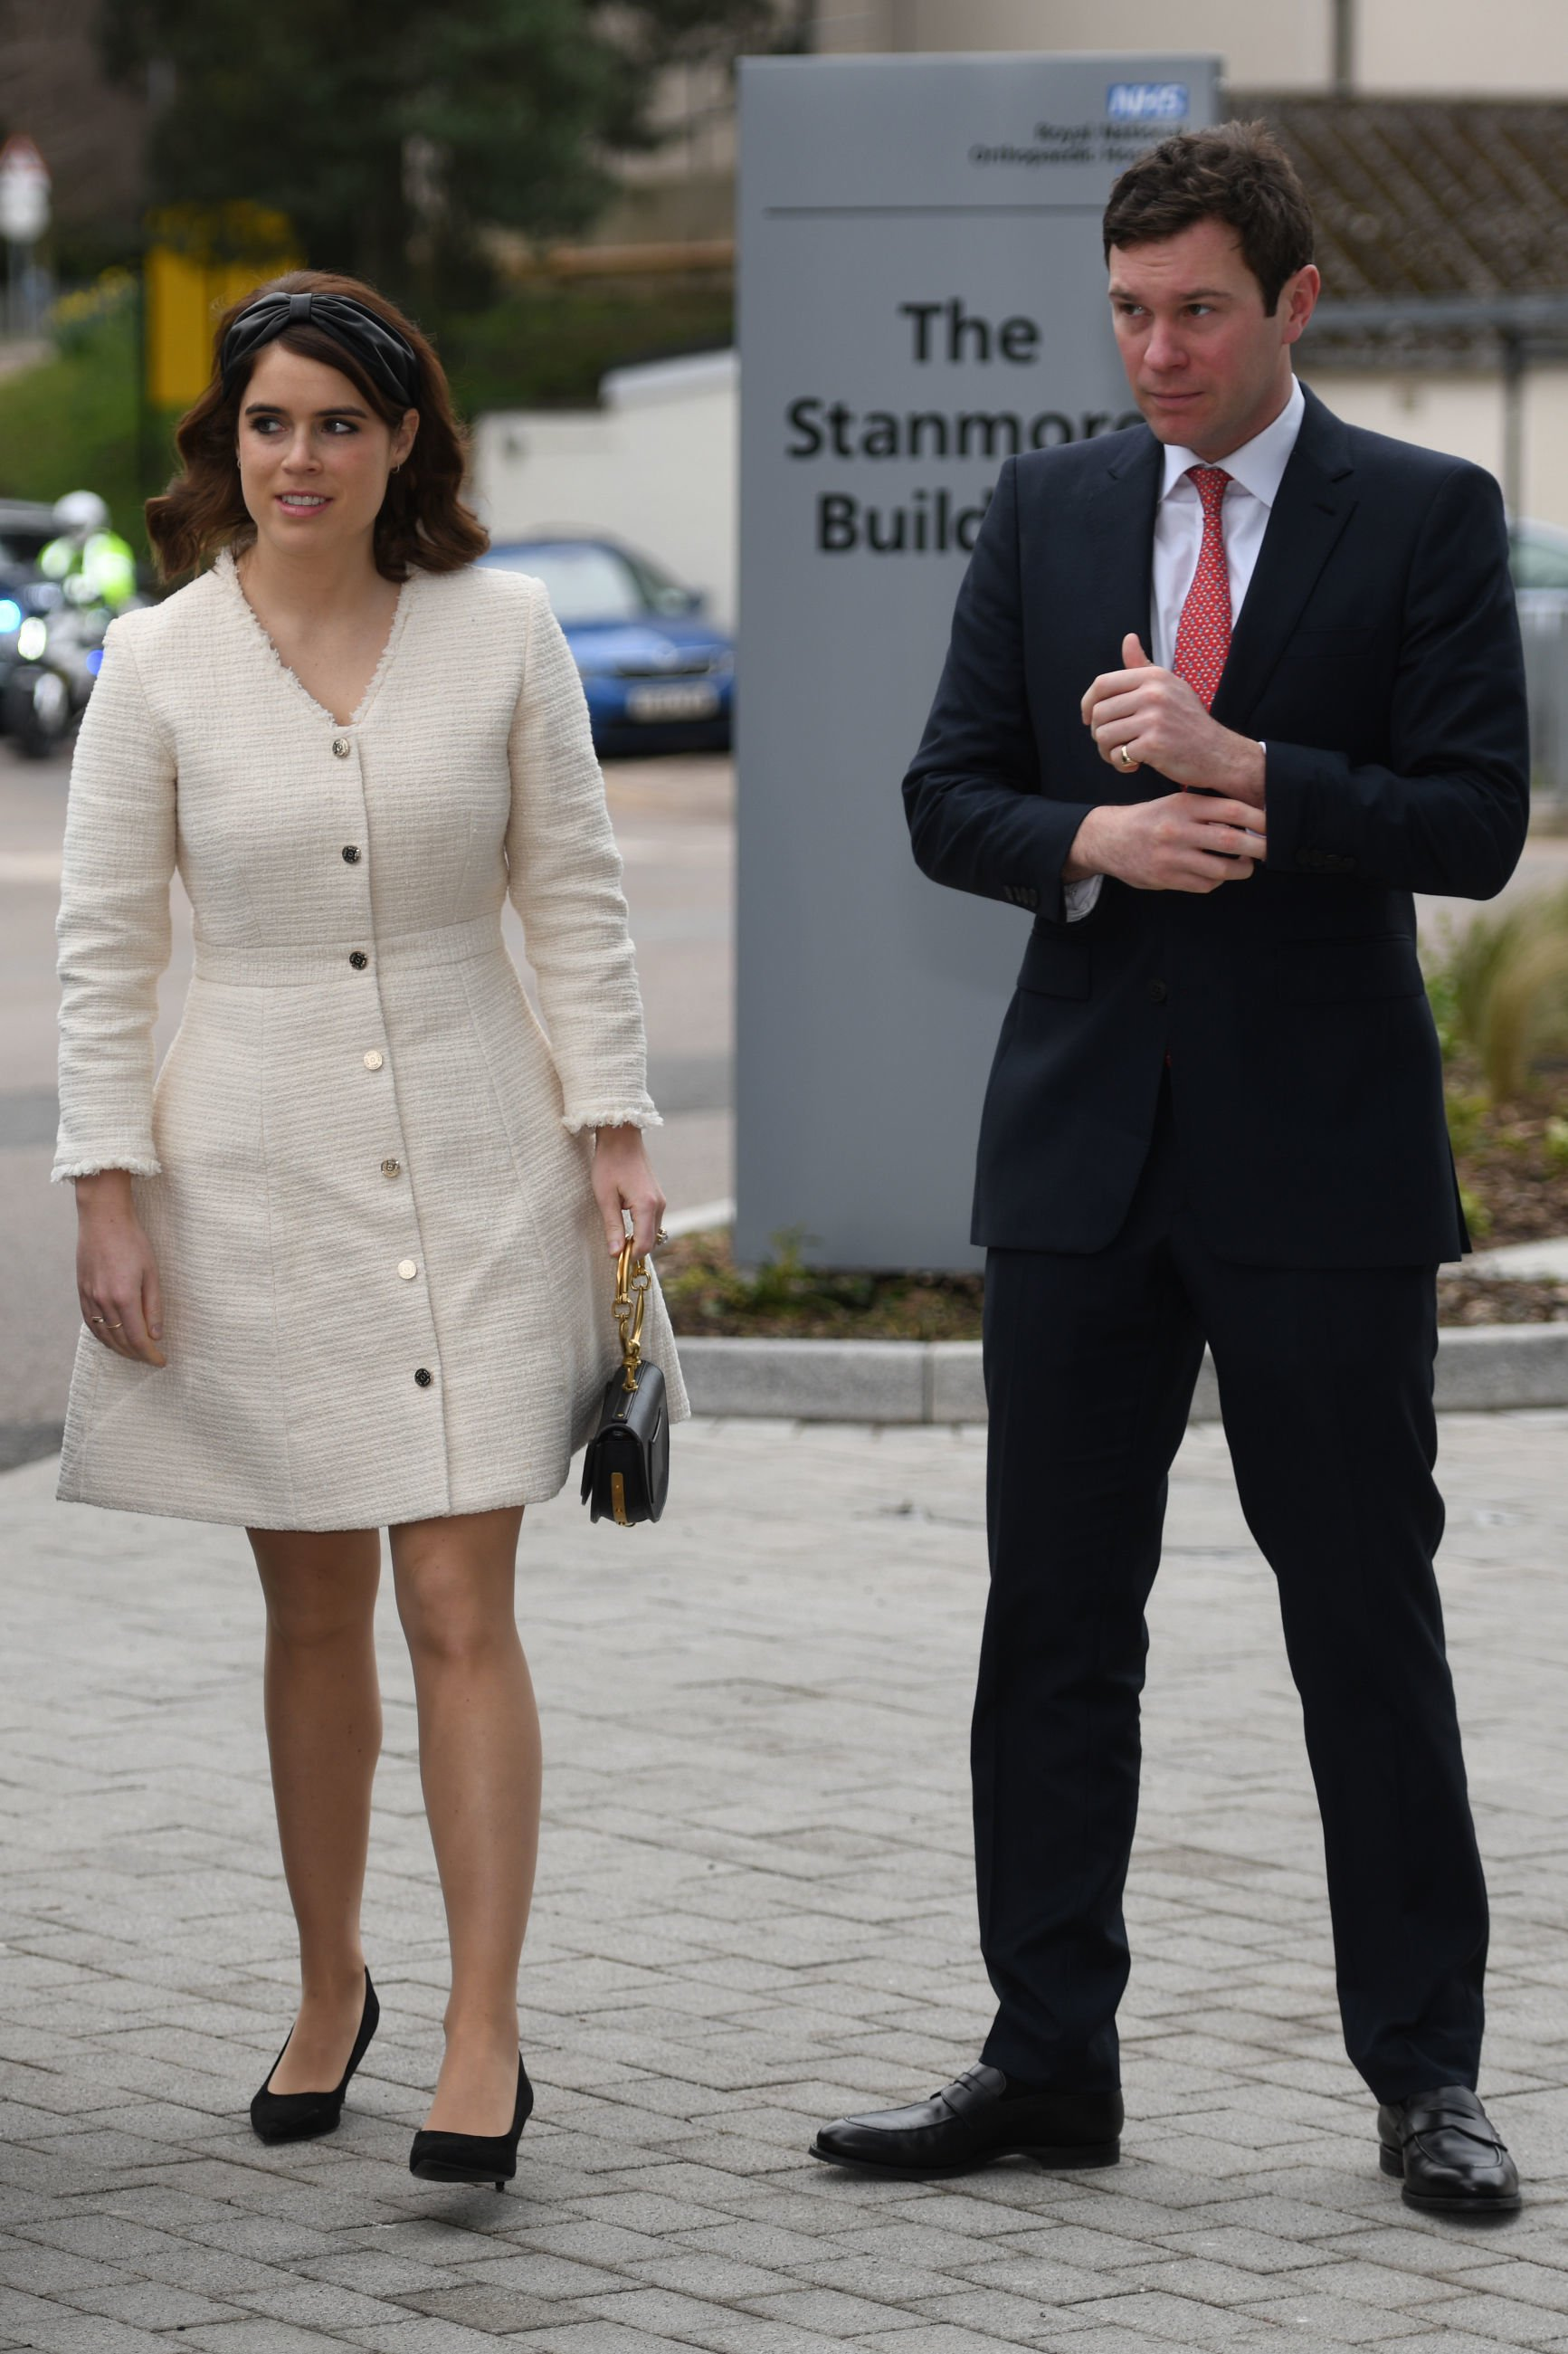 Image Source: Getty Images/Princess Eugenie and Jack Brooksbank attend the Chelsea Flower Show press day at Royal Hospital Chelsea on May 23, 2016 in London, England